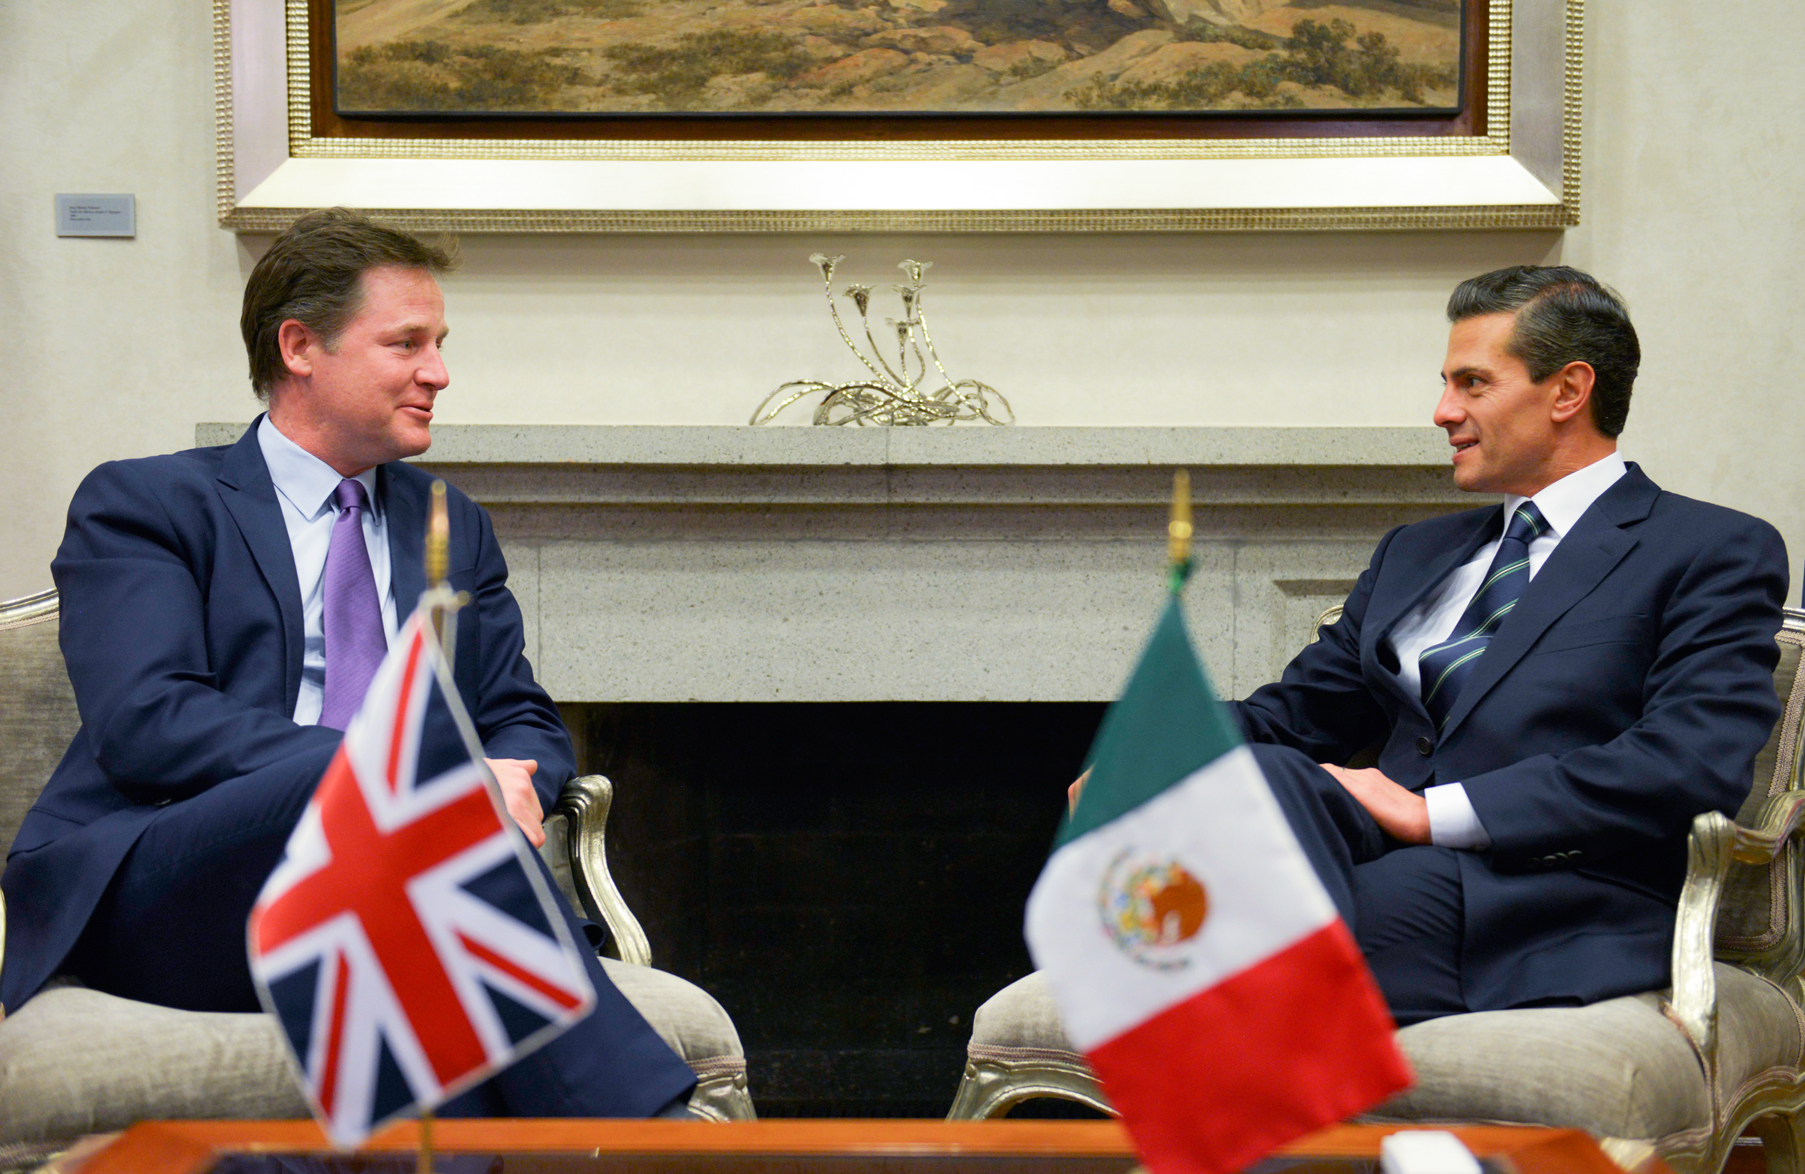 President Enrique Peña Nieto awarded Nicholas Clegg the highest honor conferred by the Mexican Government on foreigners for being a leading promoter of strengthening bilateral relations.